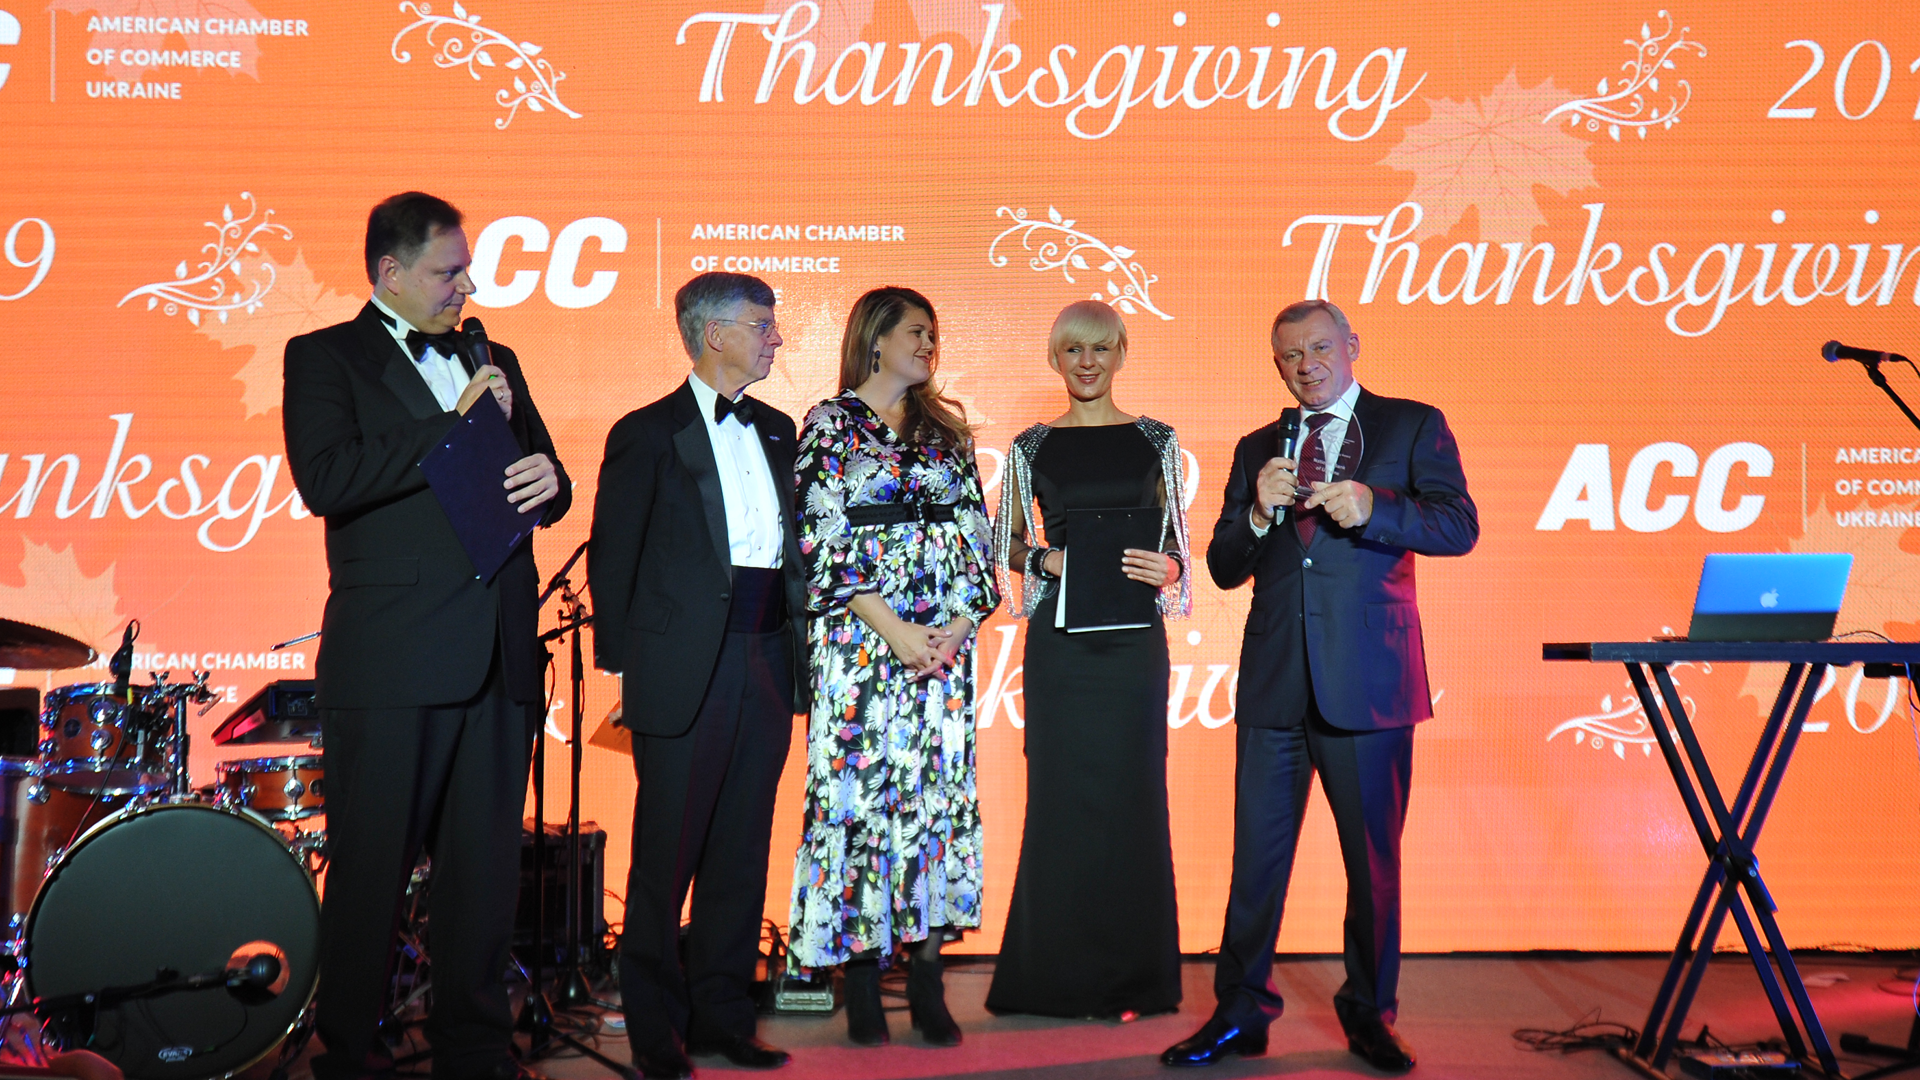 American Chamber of Commerce presents the 2019 Thanksgiving Award to the National Bank of Ukraine